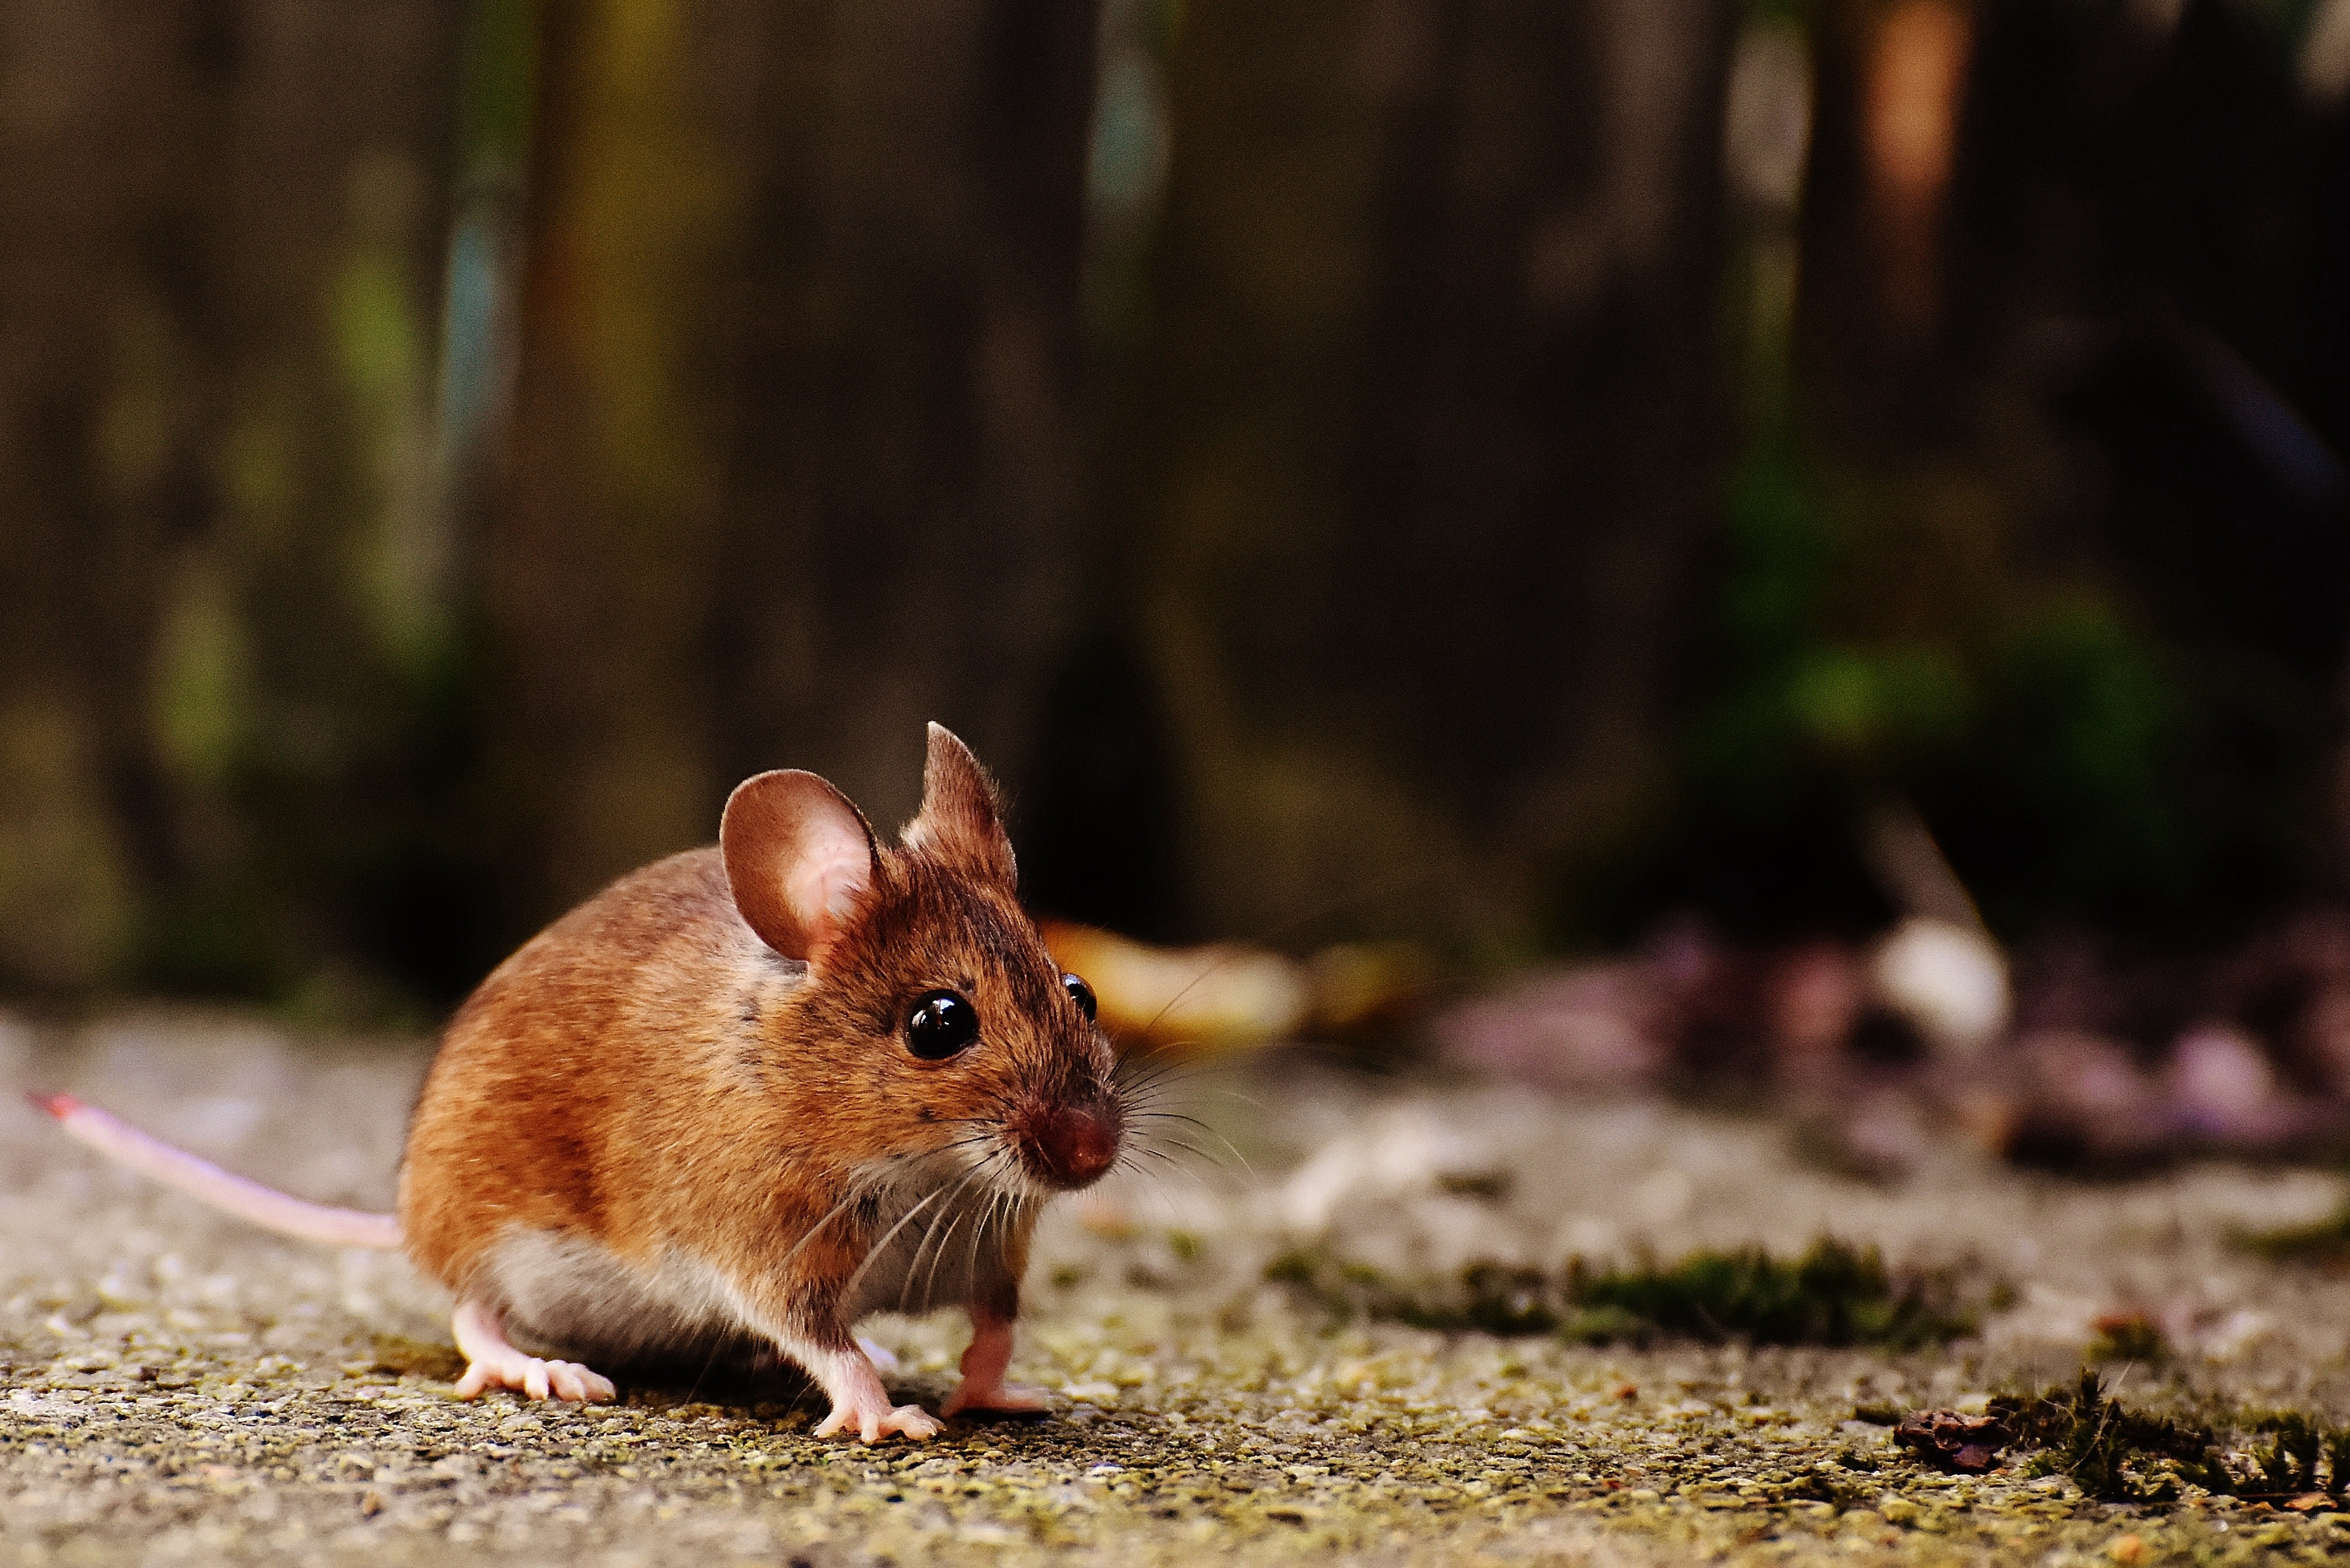 a mouse on a forest floor looking alert and ready to move